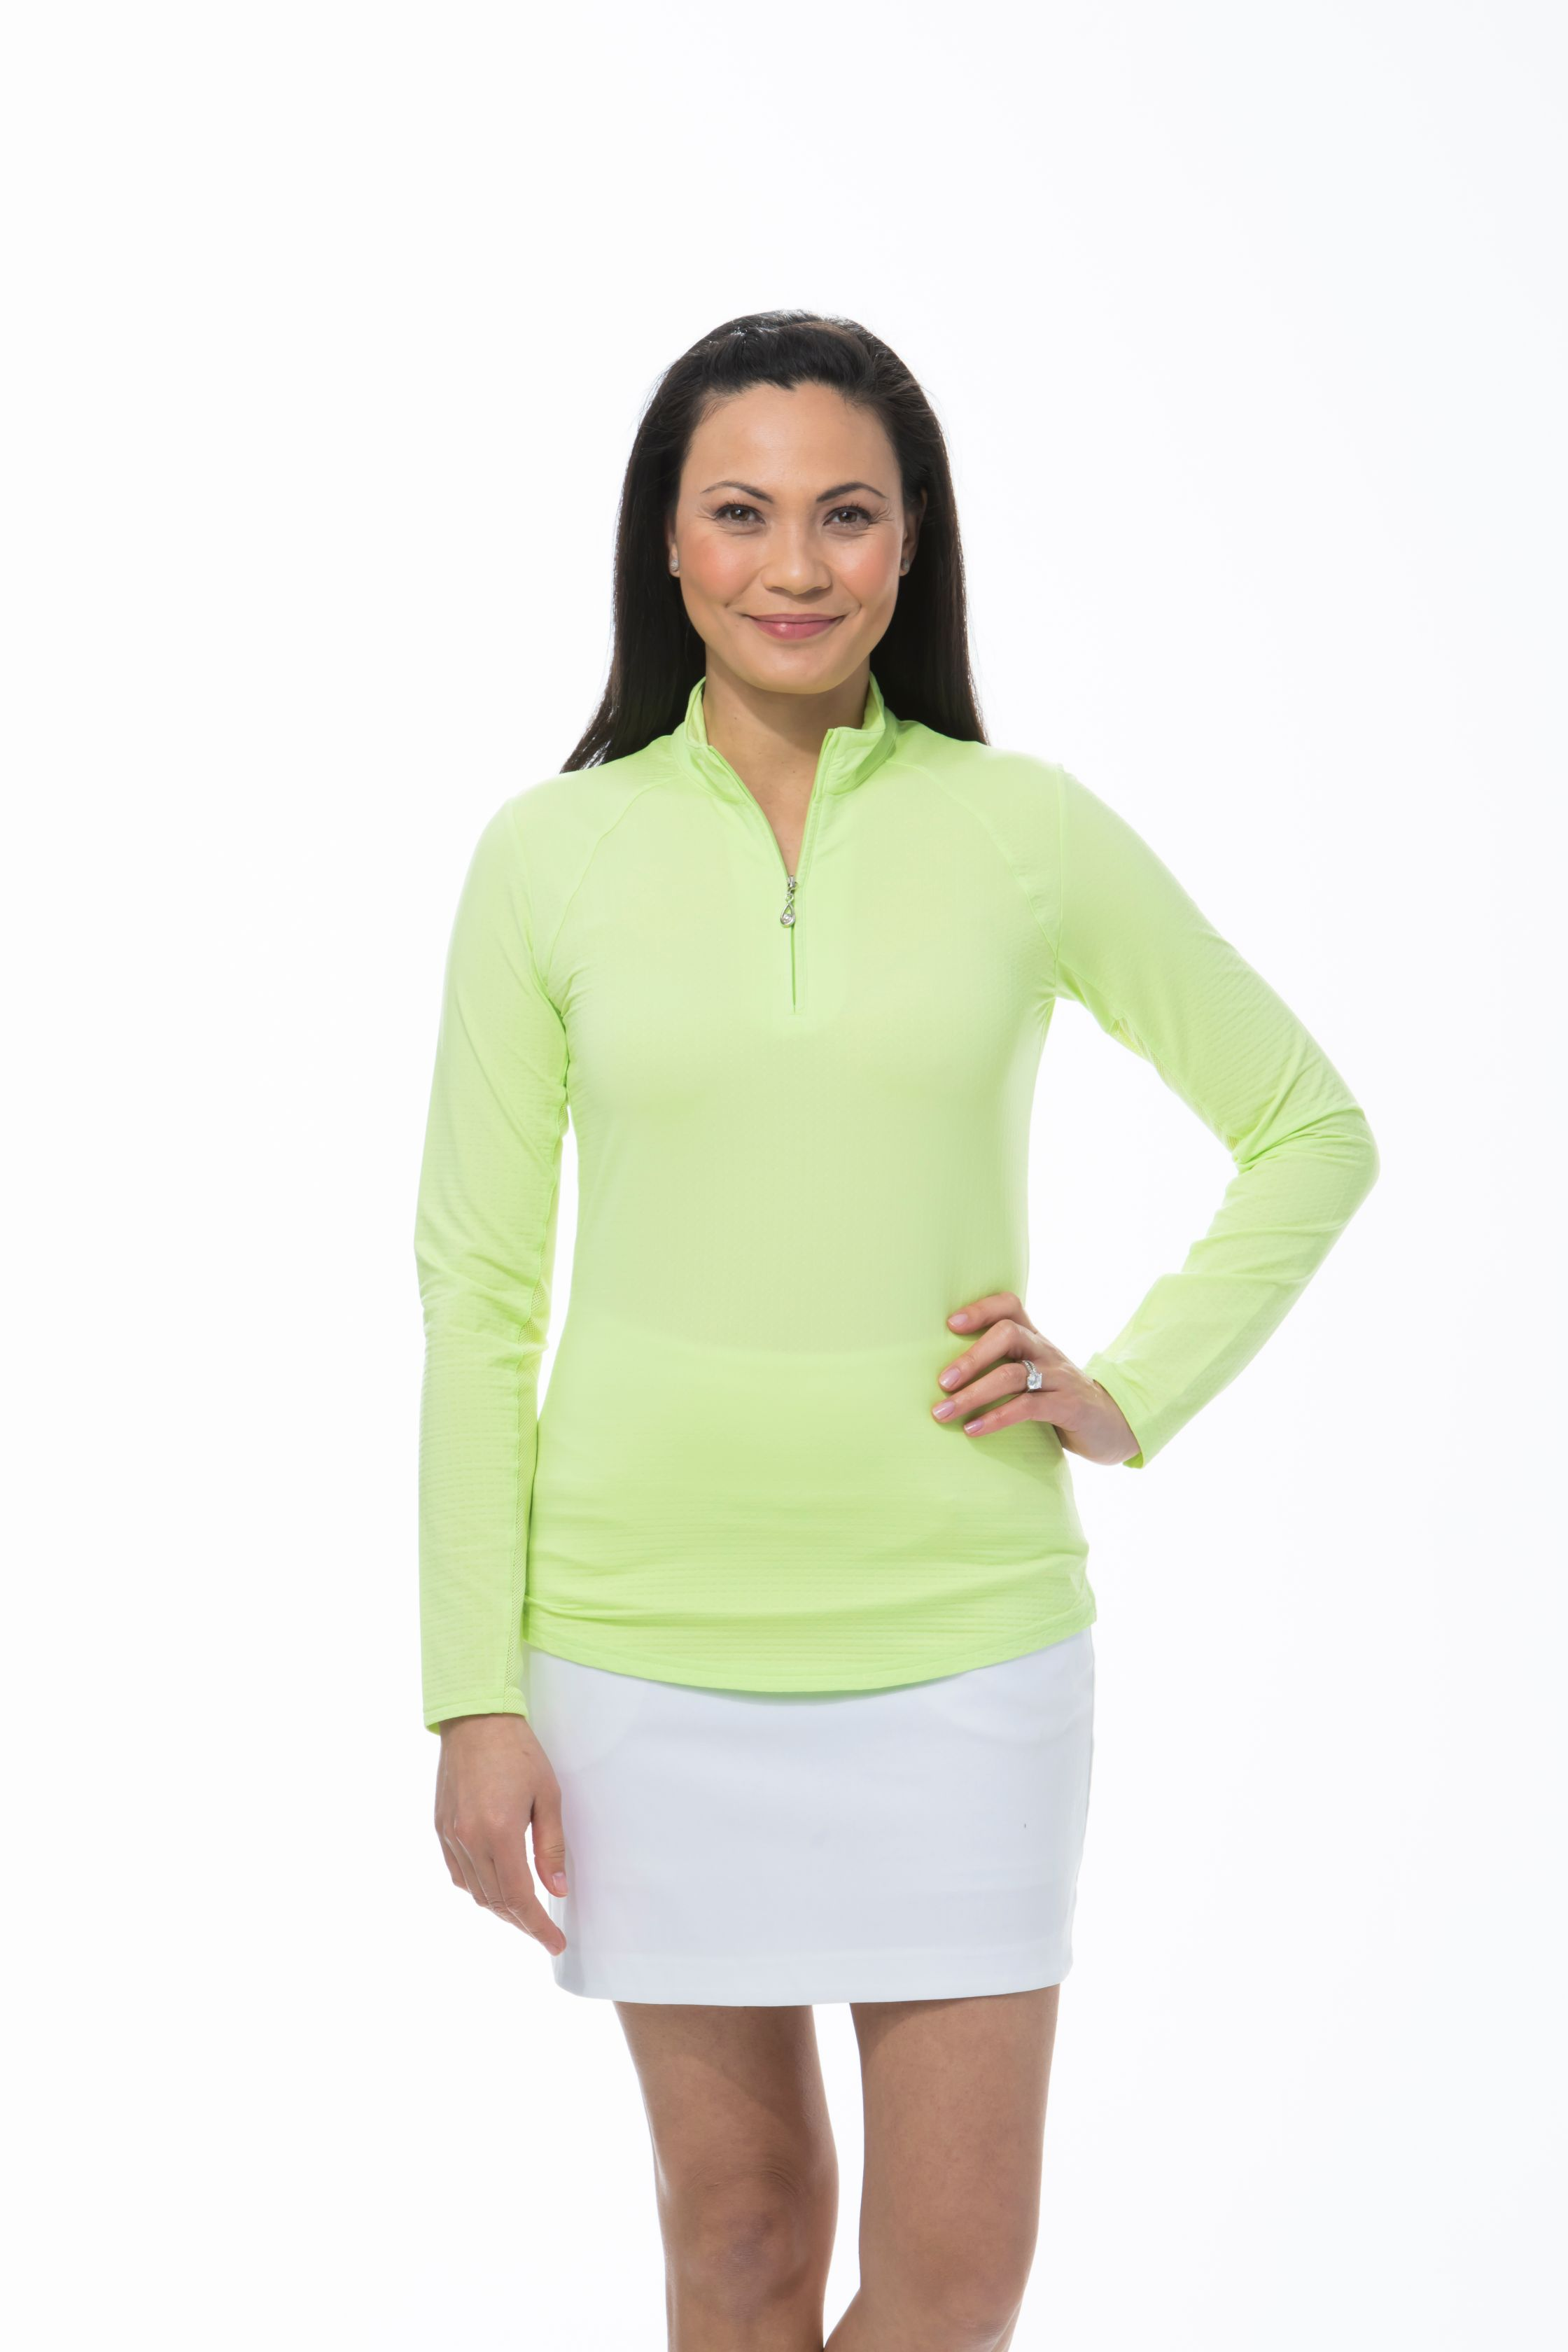 900601 SanSoleil SolTek Ice Zip Polo. Lime